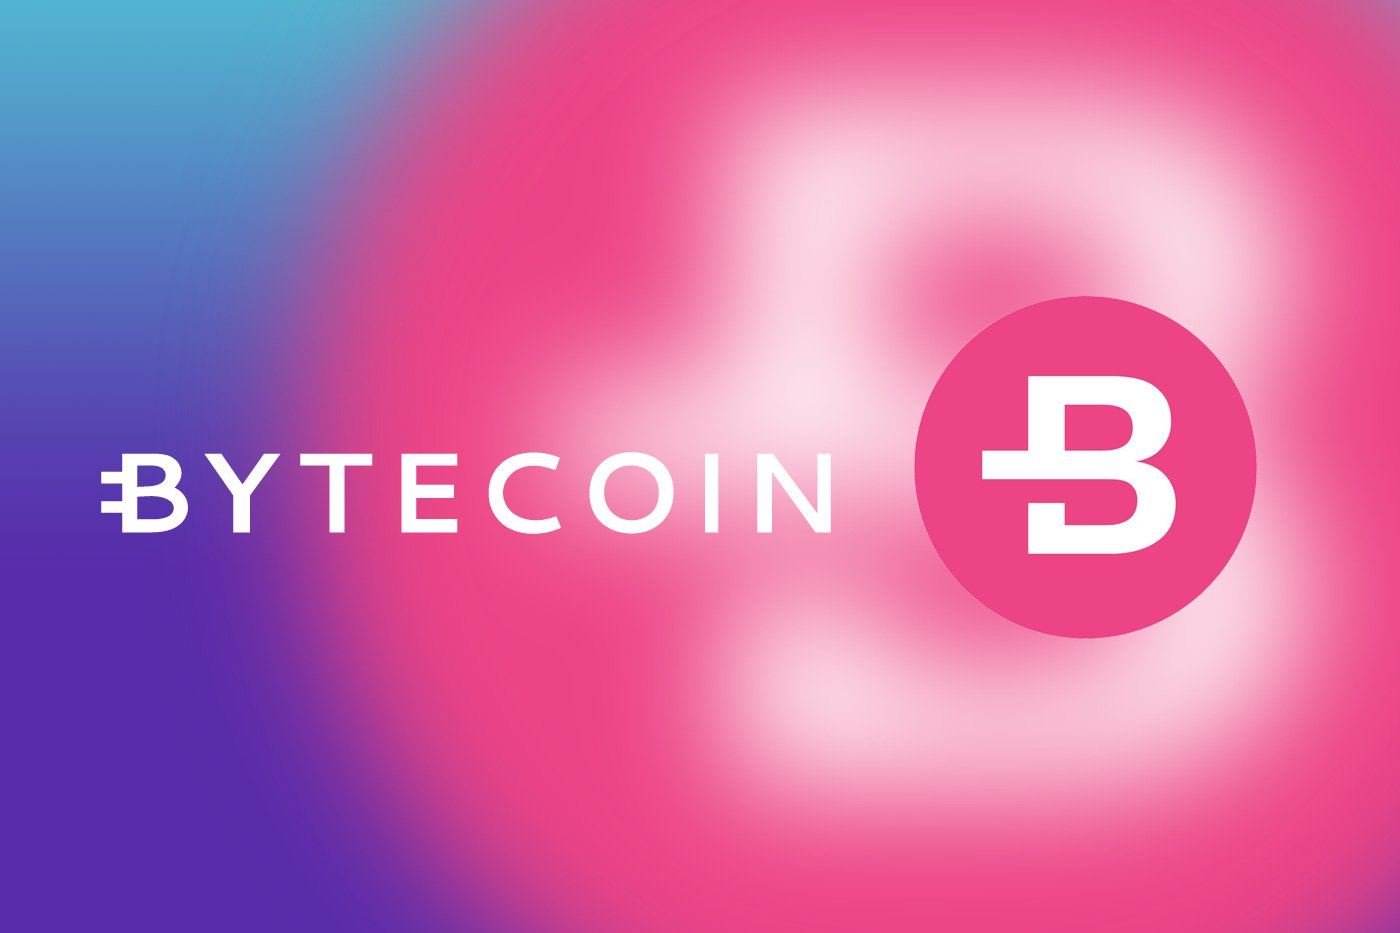 Bytecoin surges 30% on Binance listing – The Coinage Times